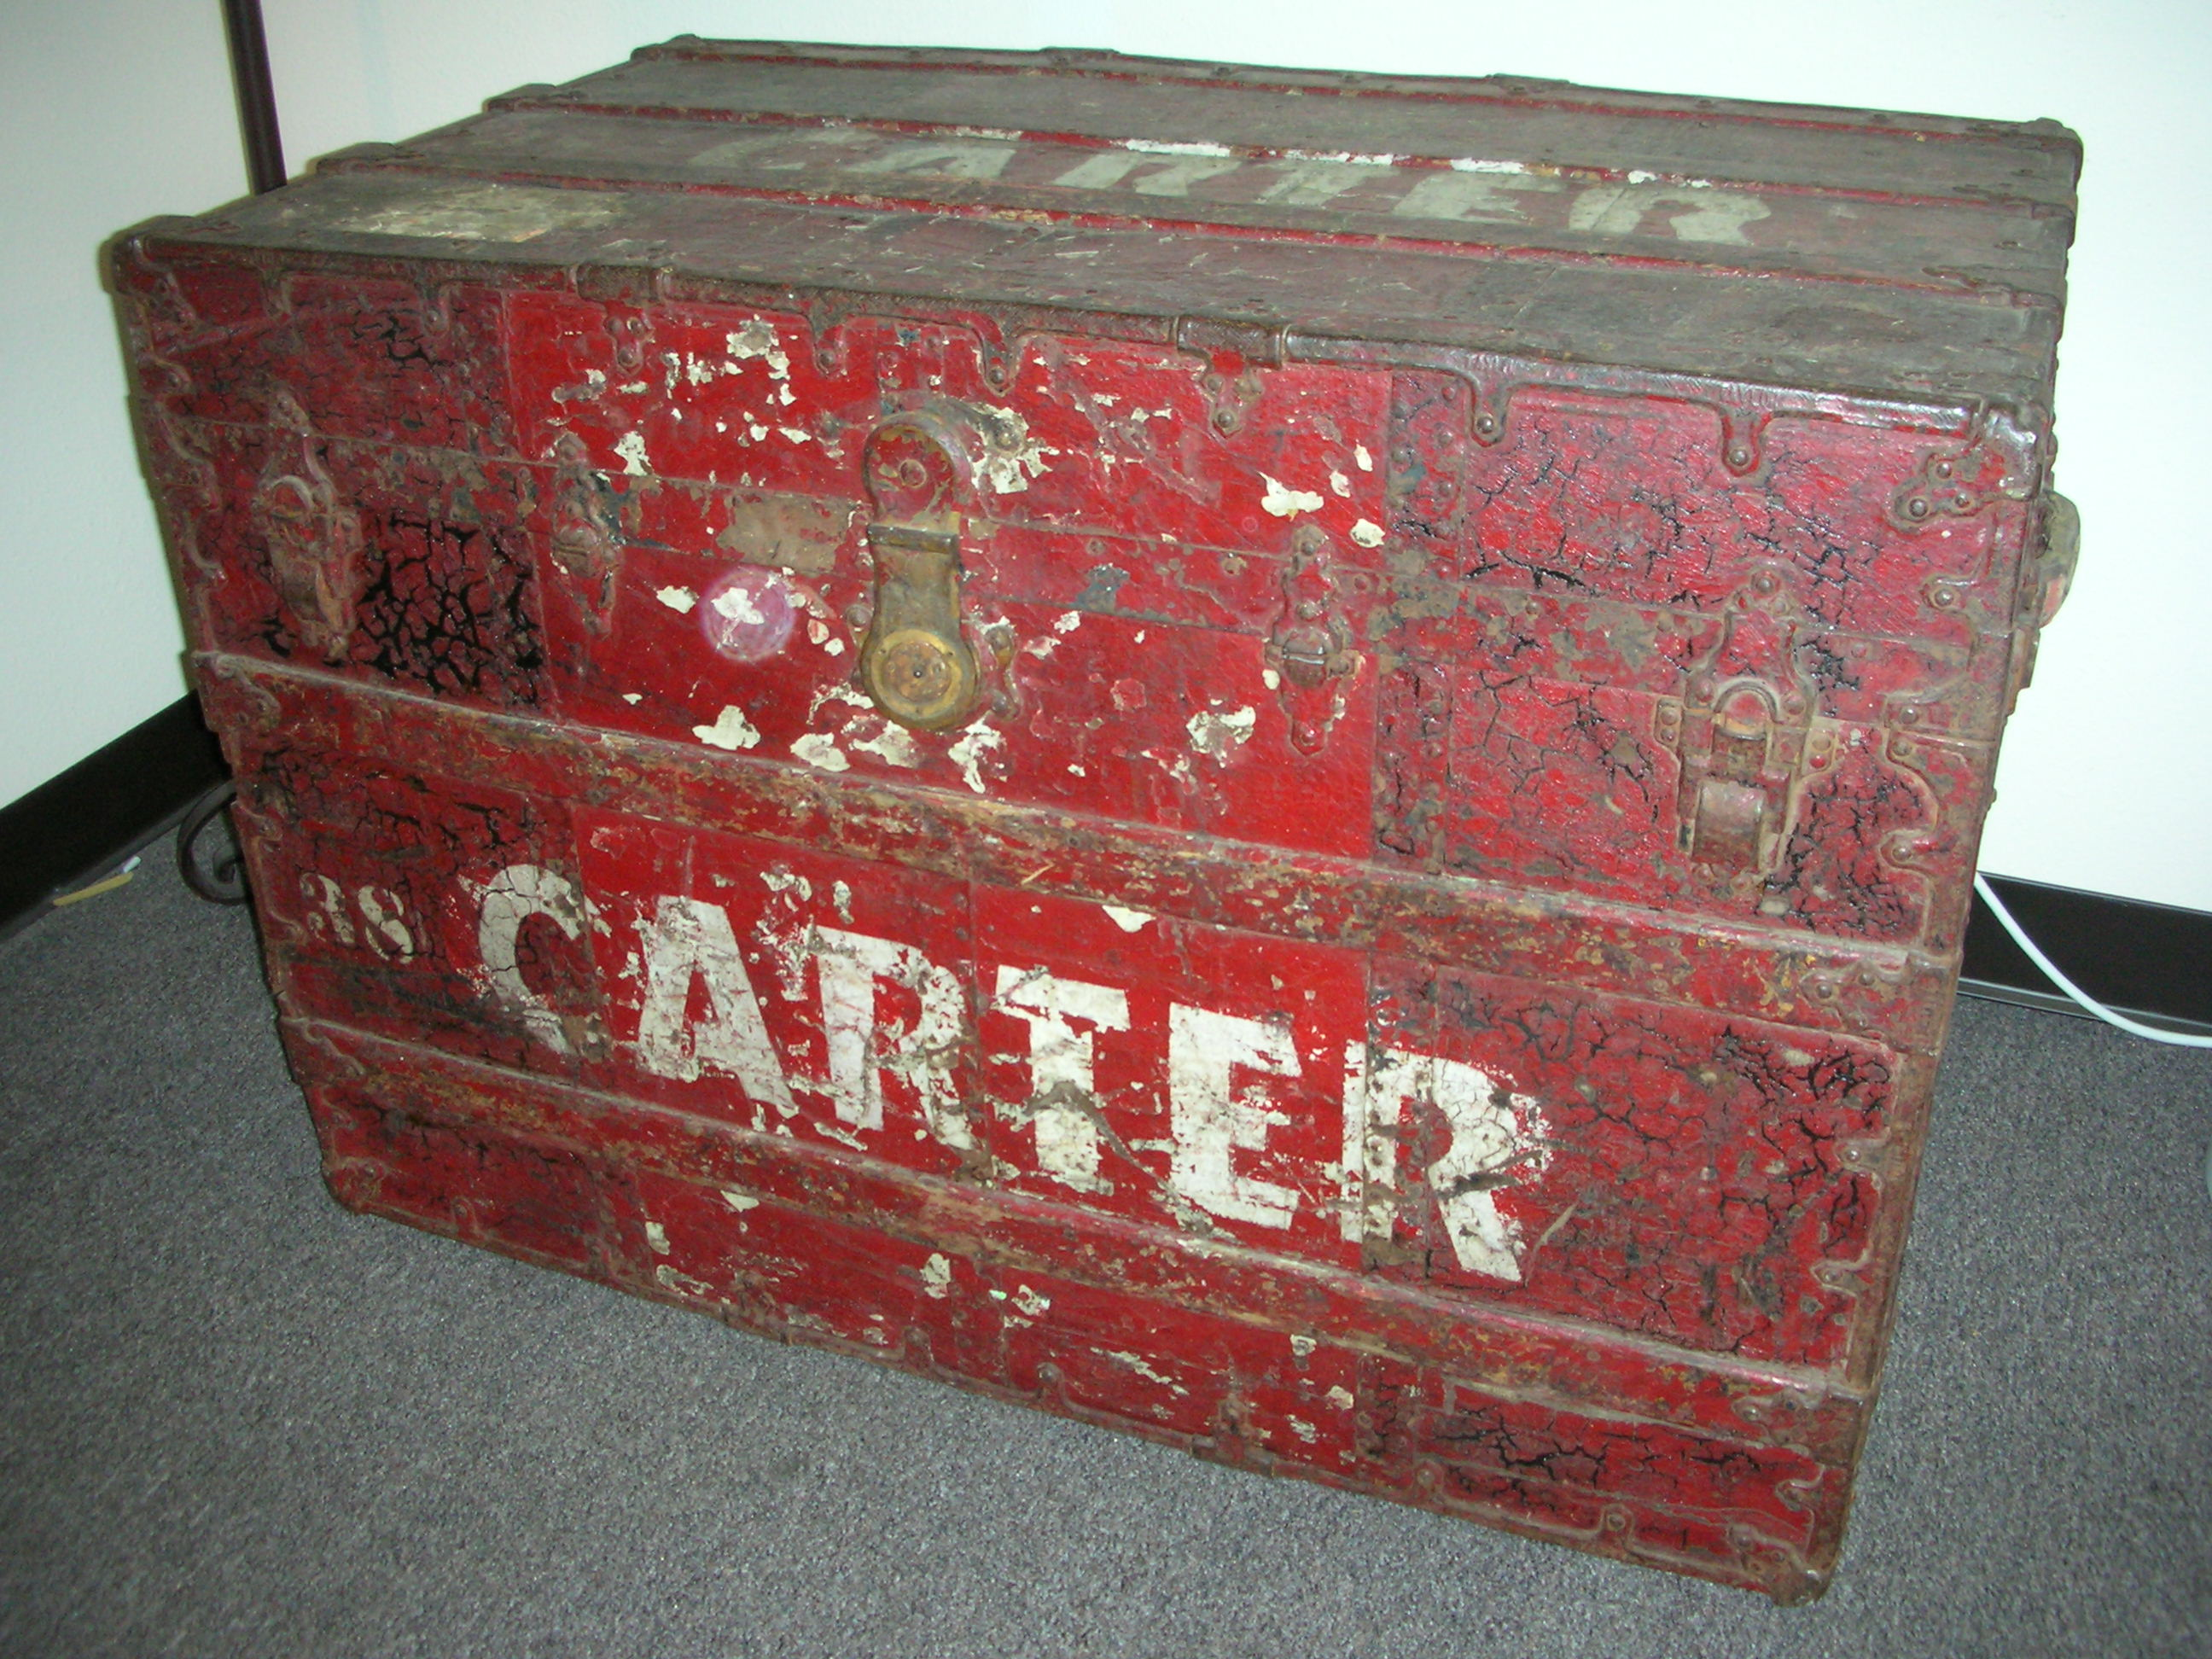 This trunk was acquired from